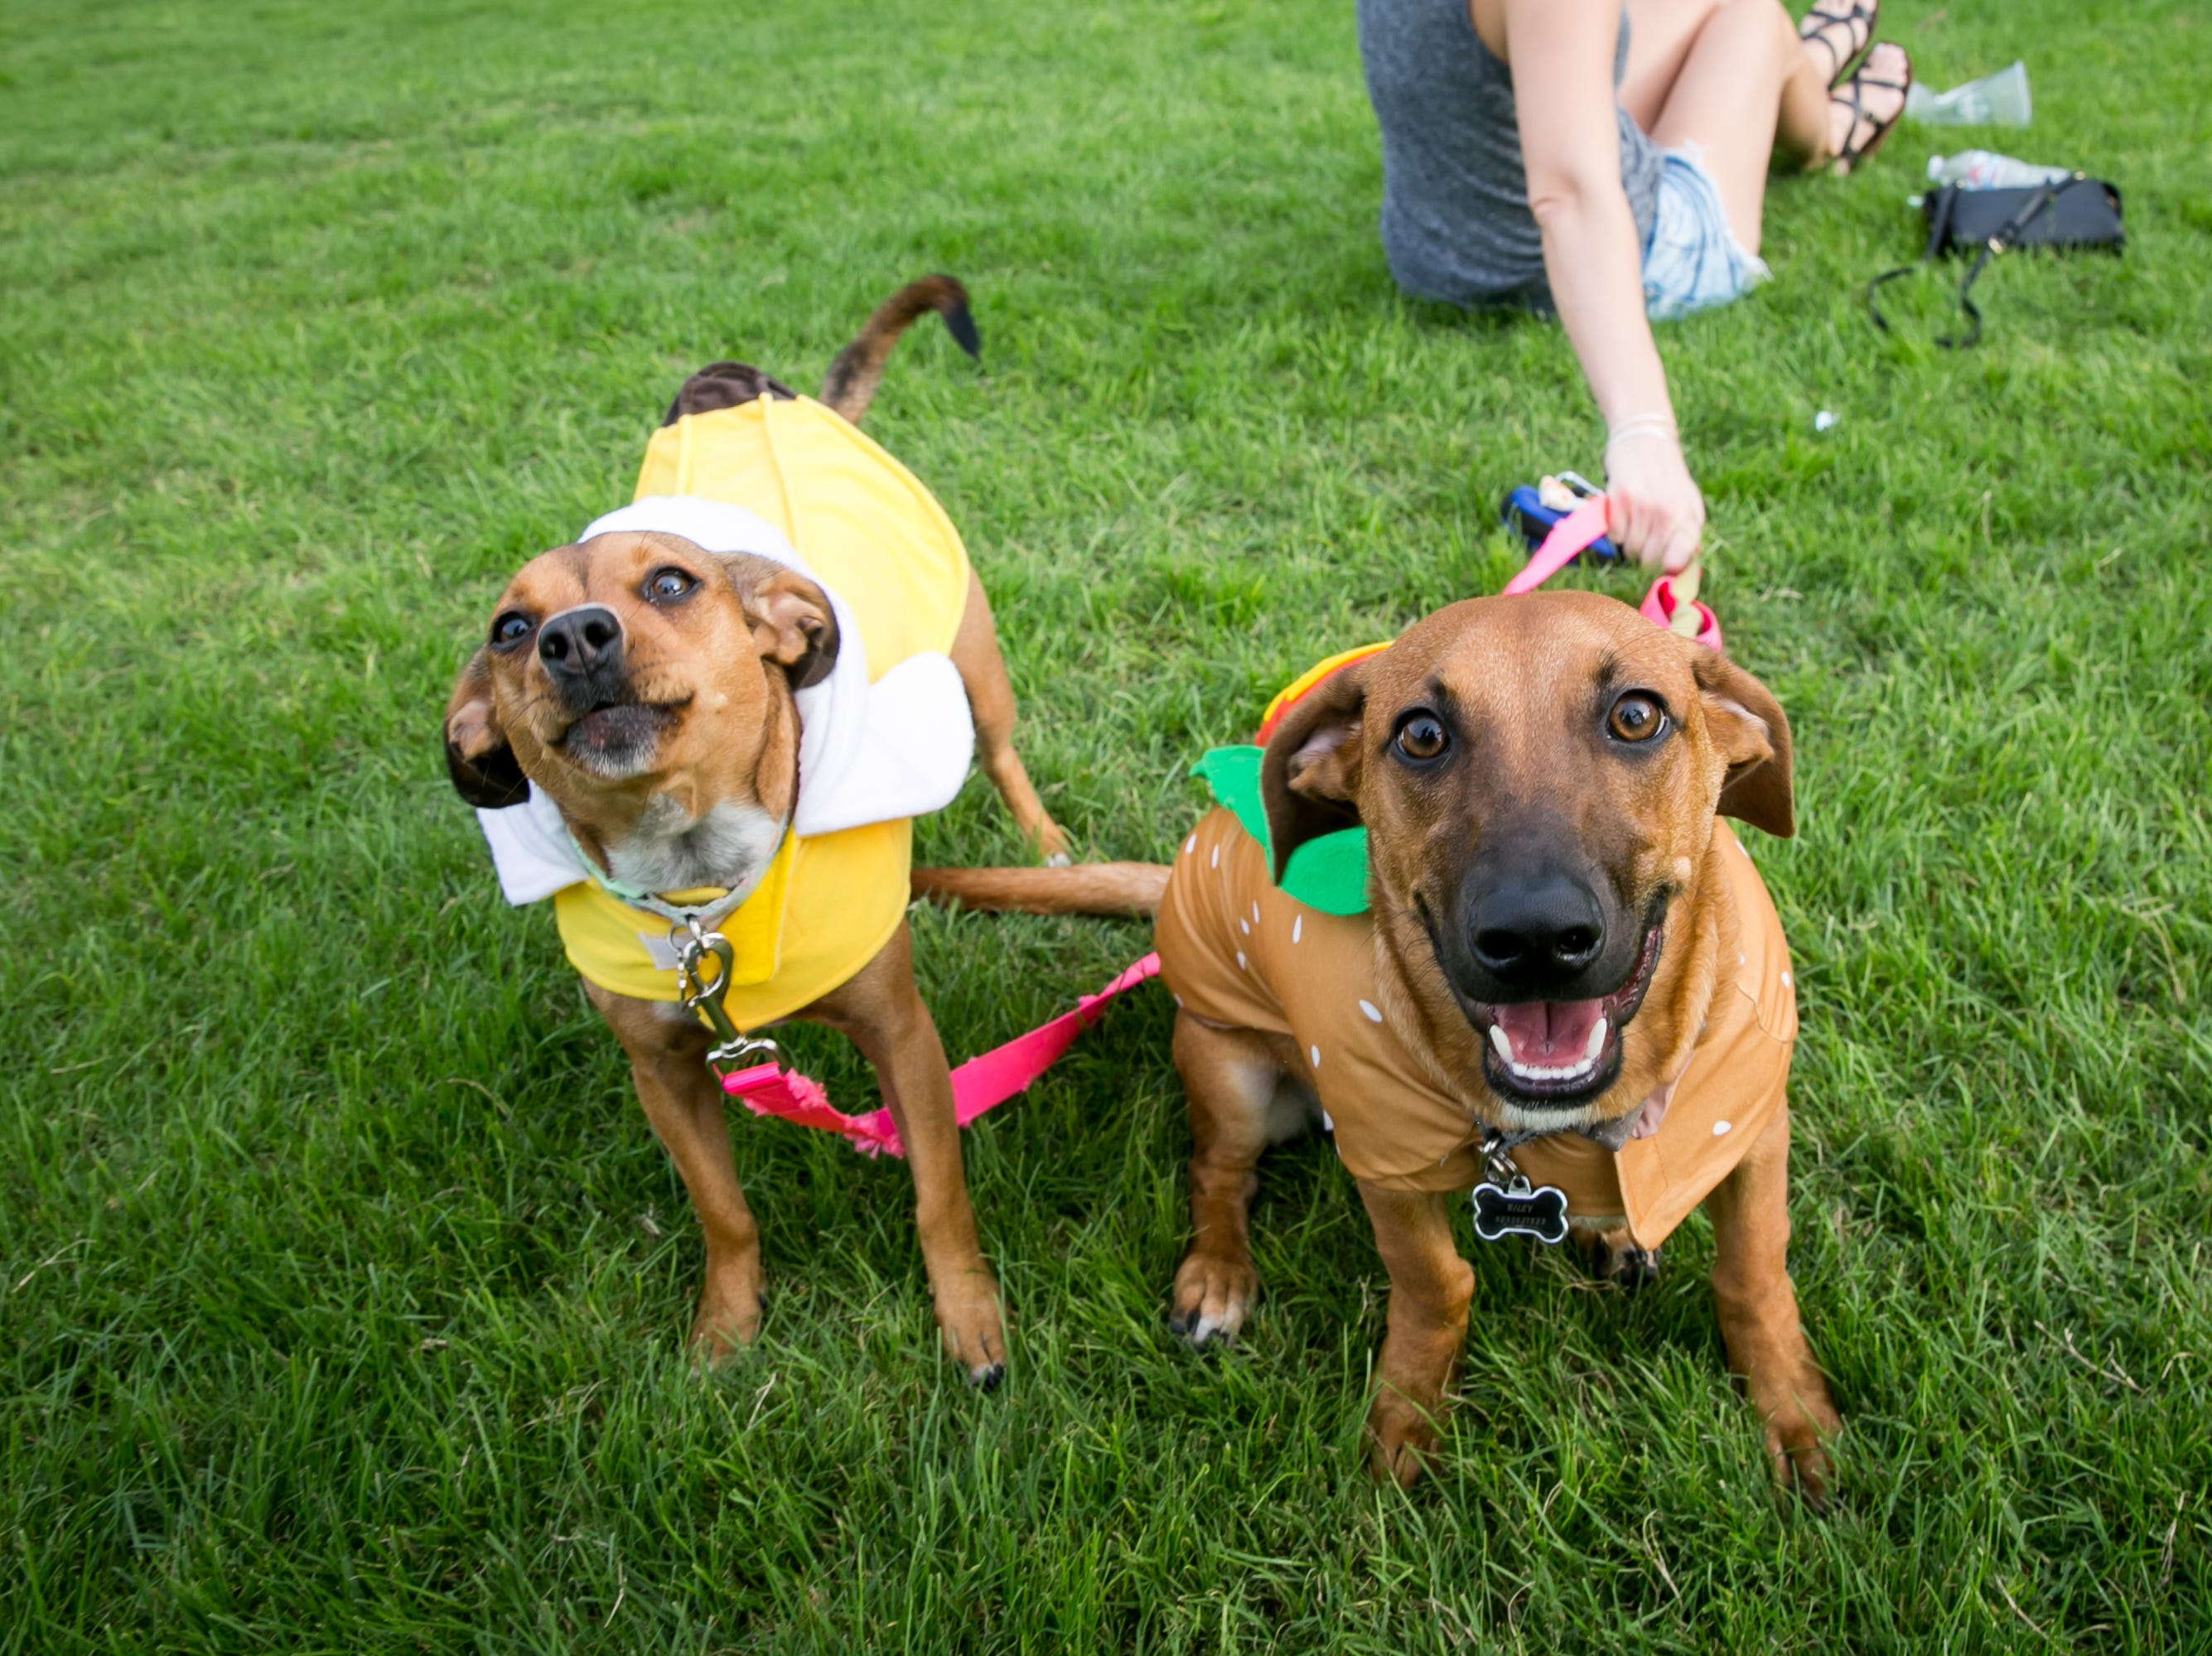 These pups made lots of new friends during Howl-o-Ween at Hance Park on Sunday, October 28, 2018.